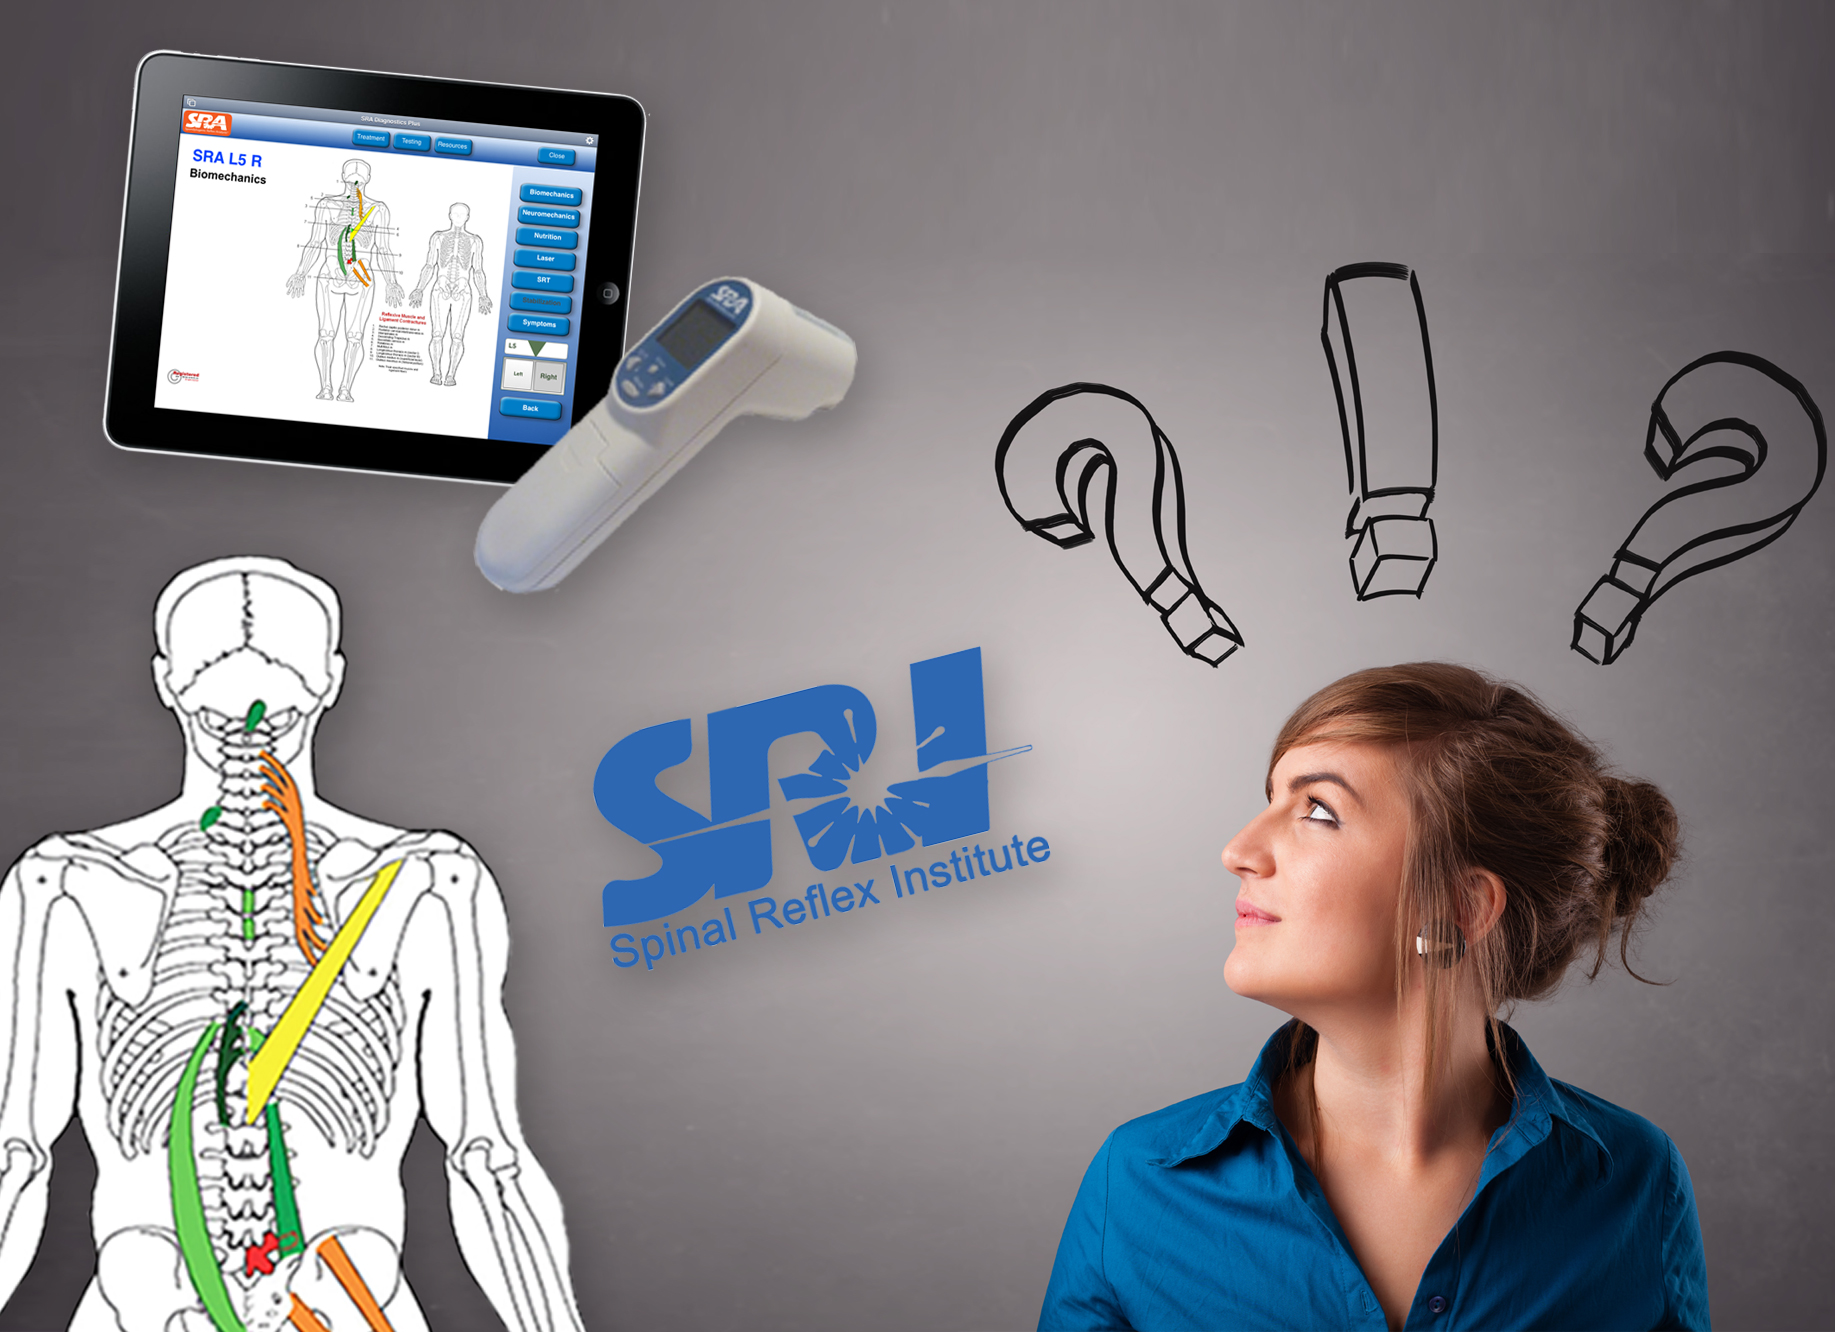 Questions about Spinal Reflex?